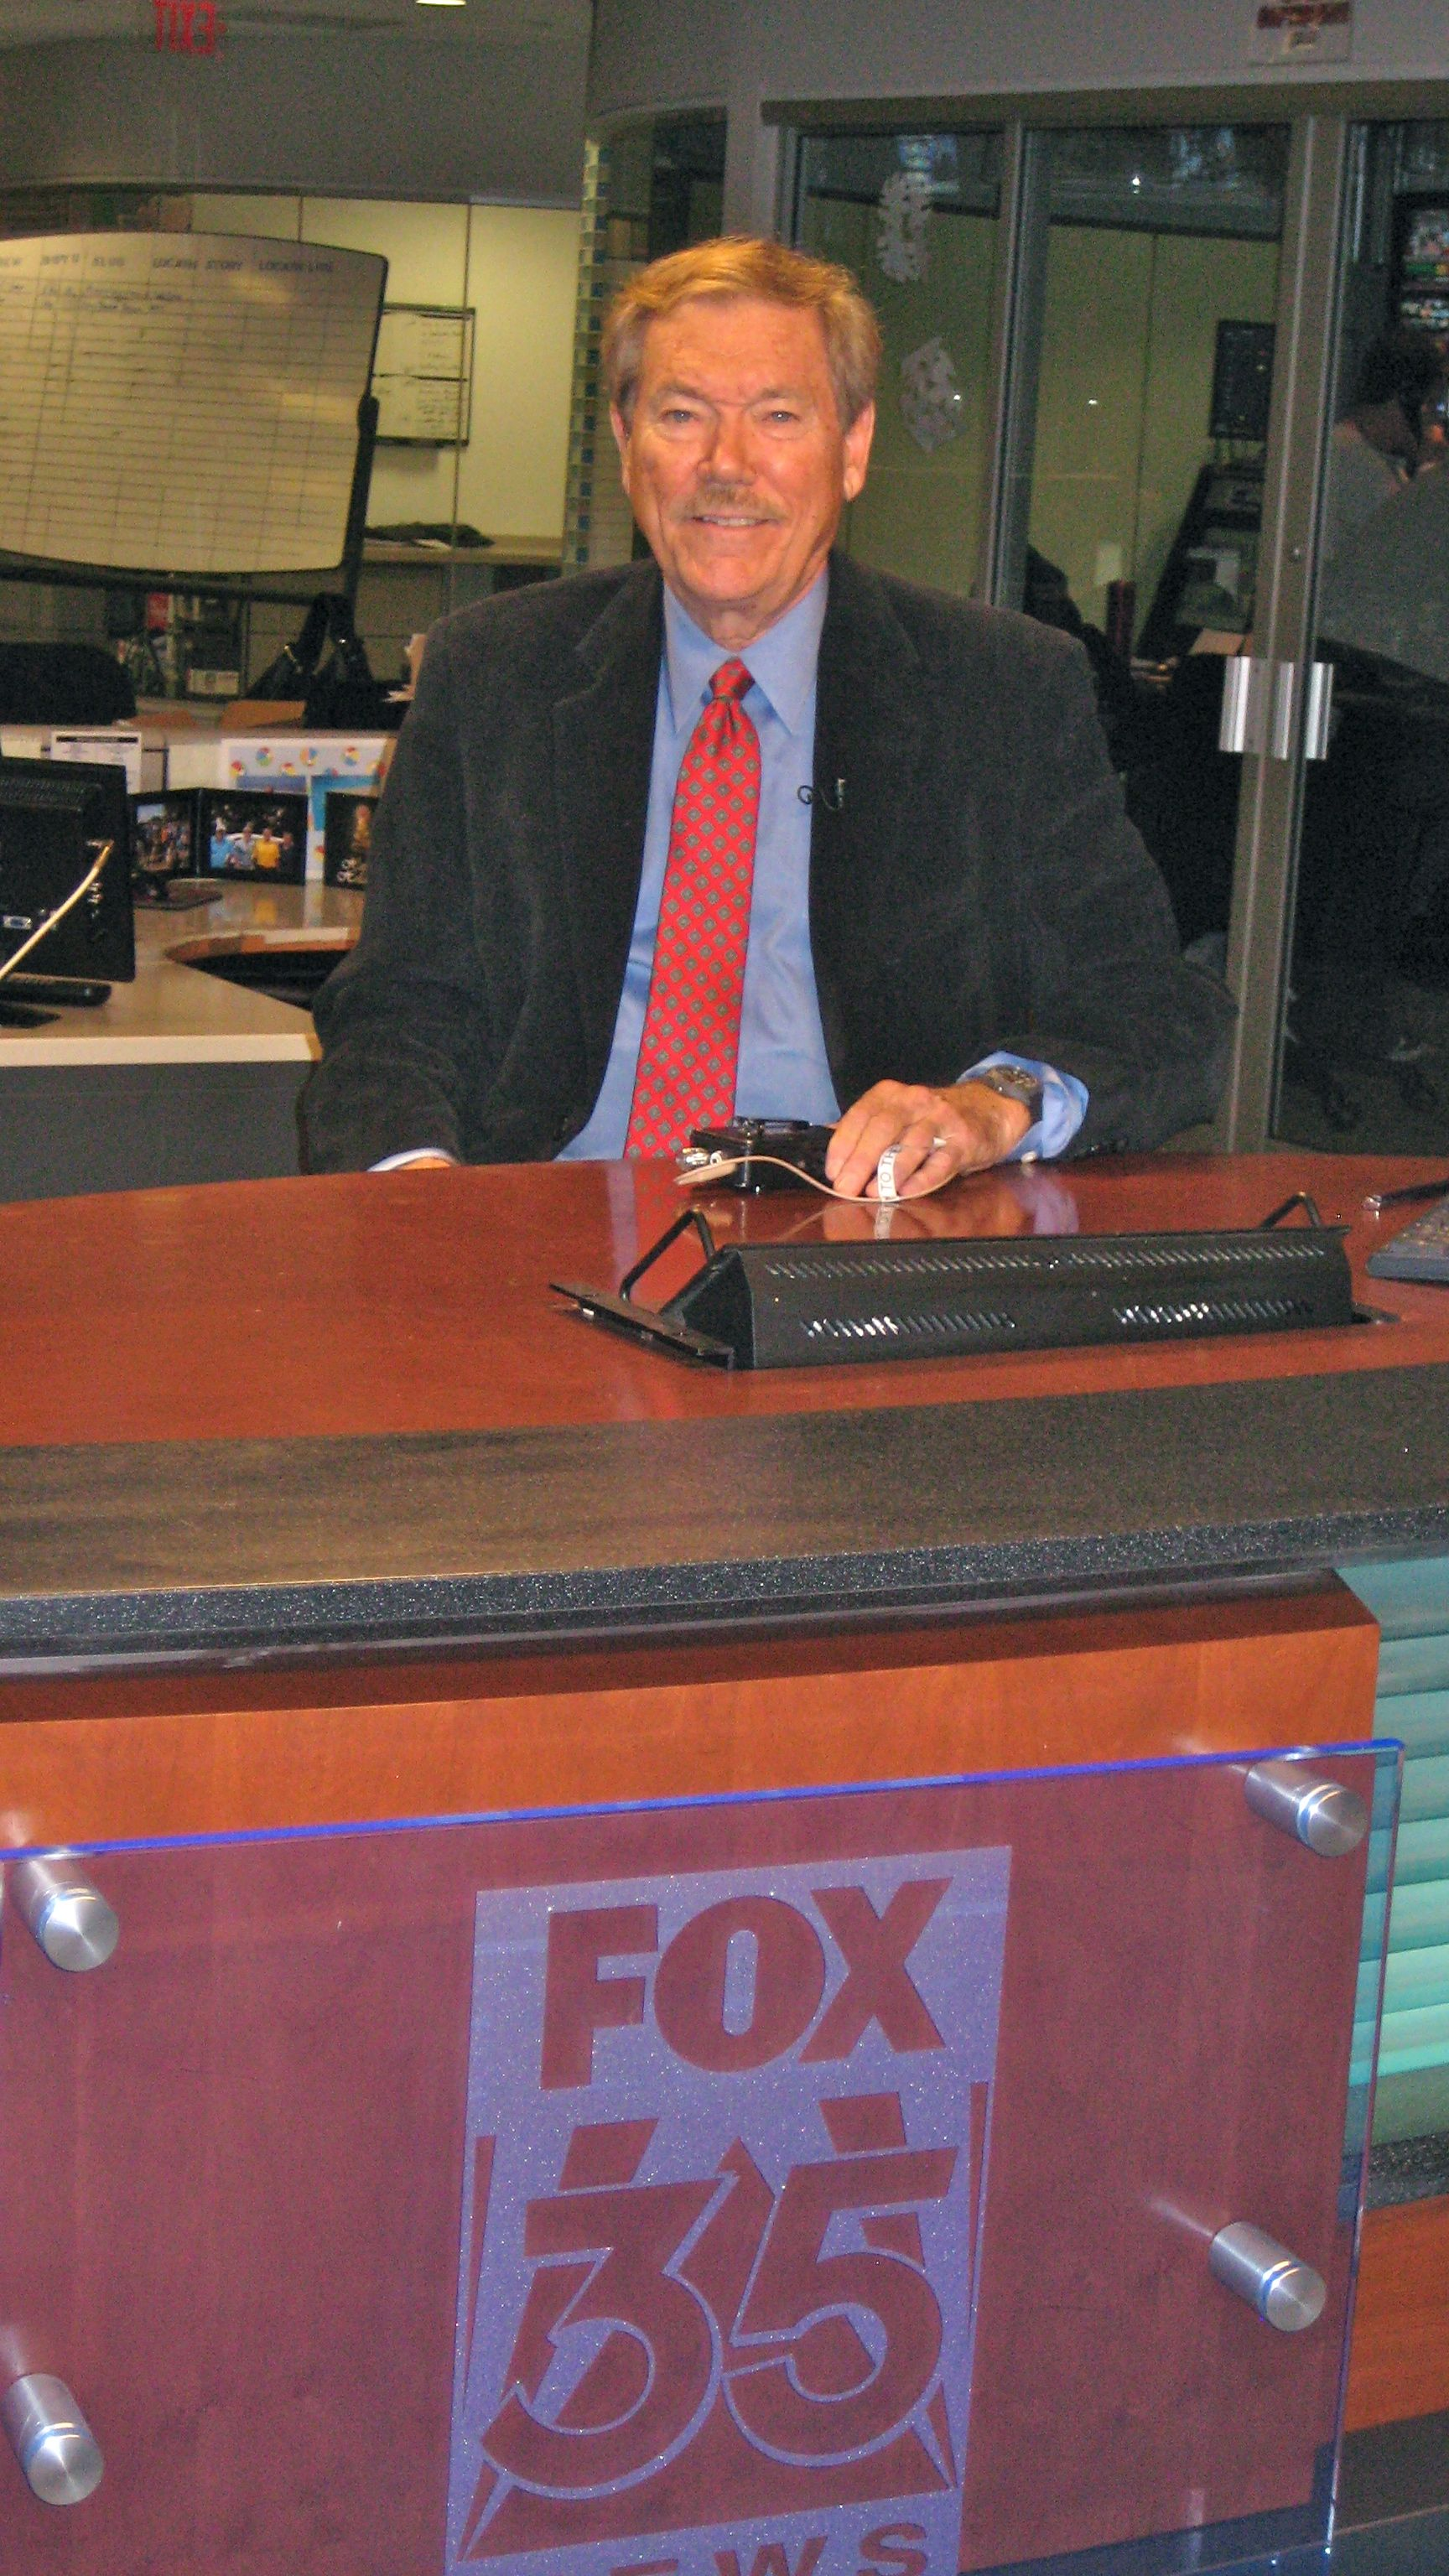 BG Fox interview 123011.jpg